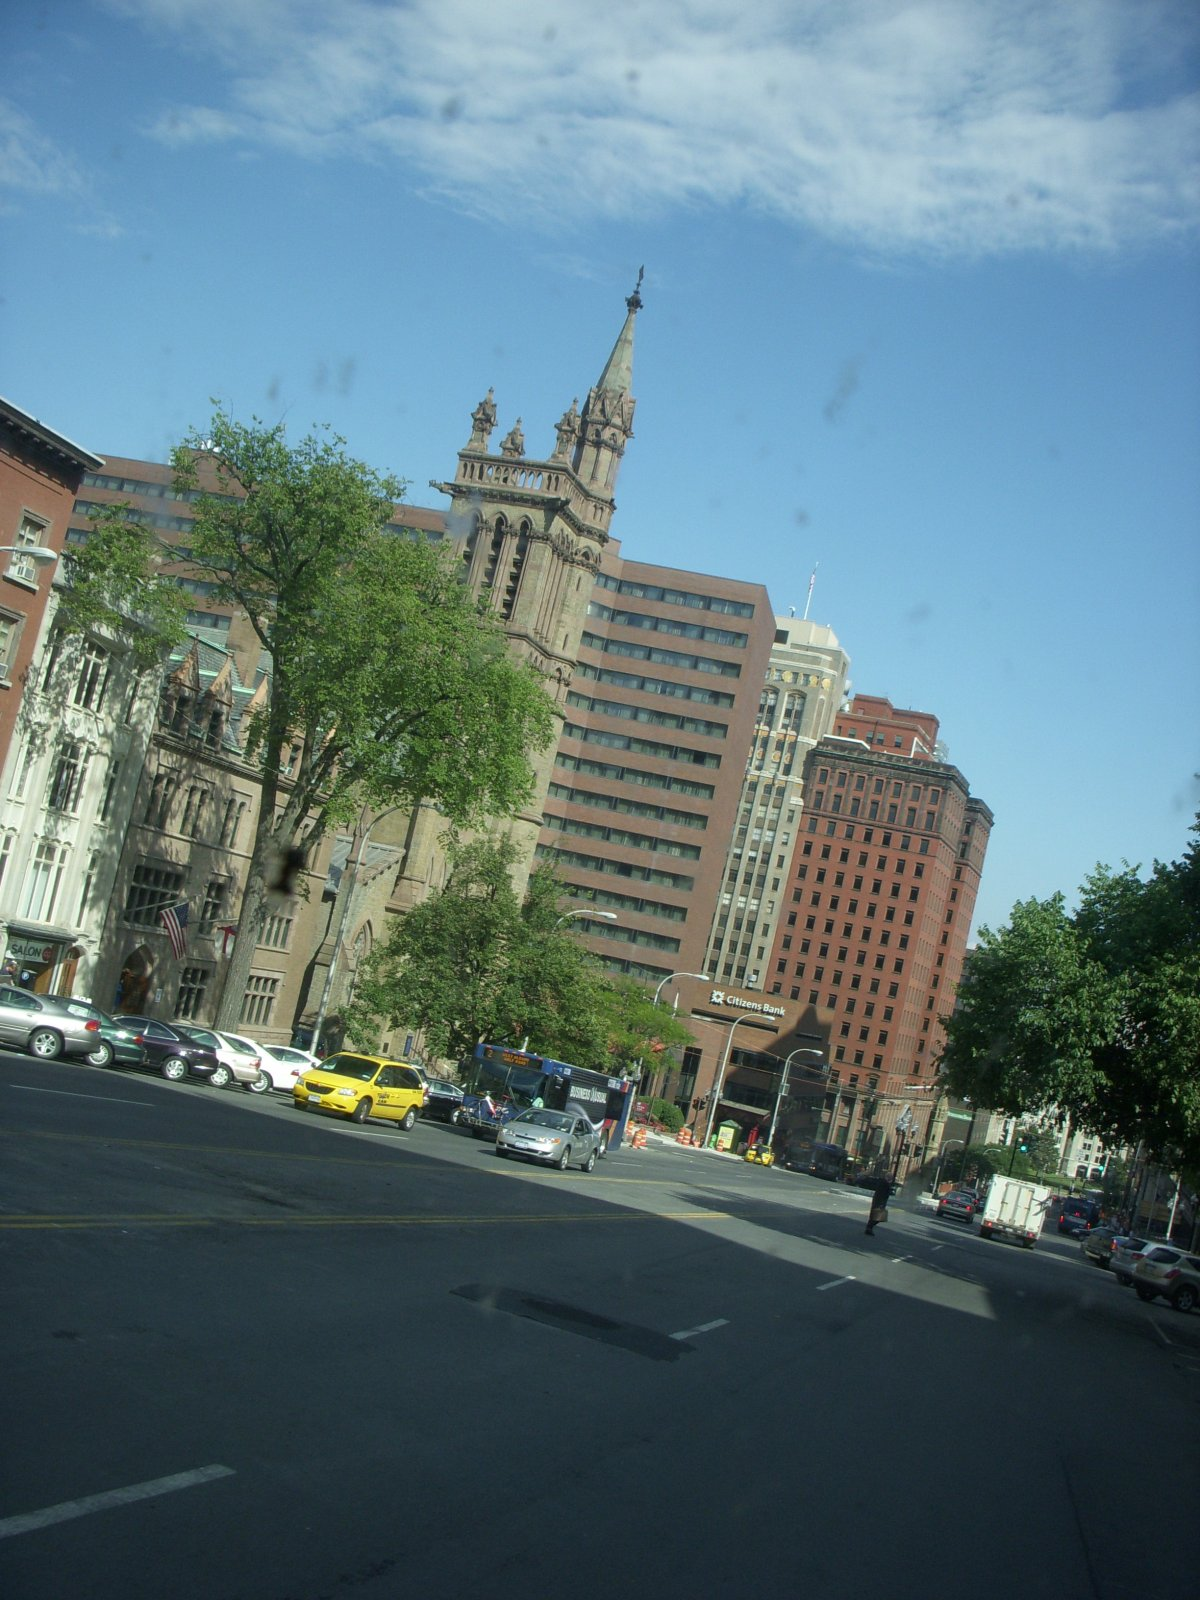 Click image for larger version  Name:Mass. Conn, Penn, Aug 2011 022.jpg Views:69 Size:310.7 KB ID:137558